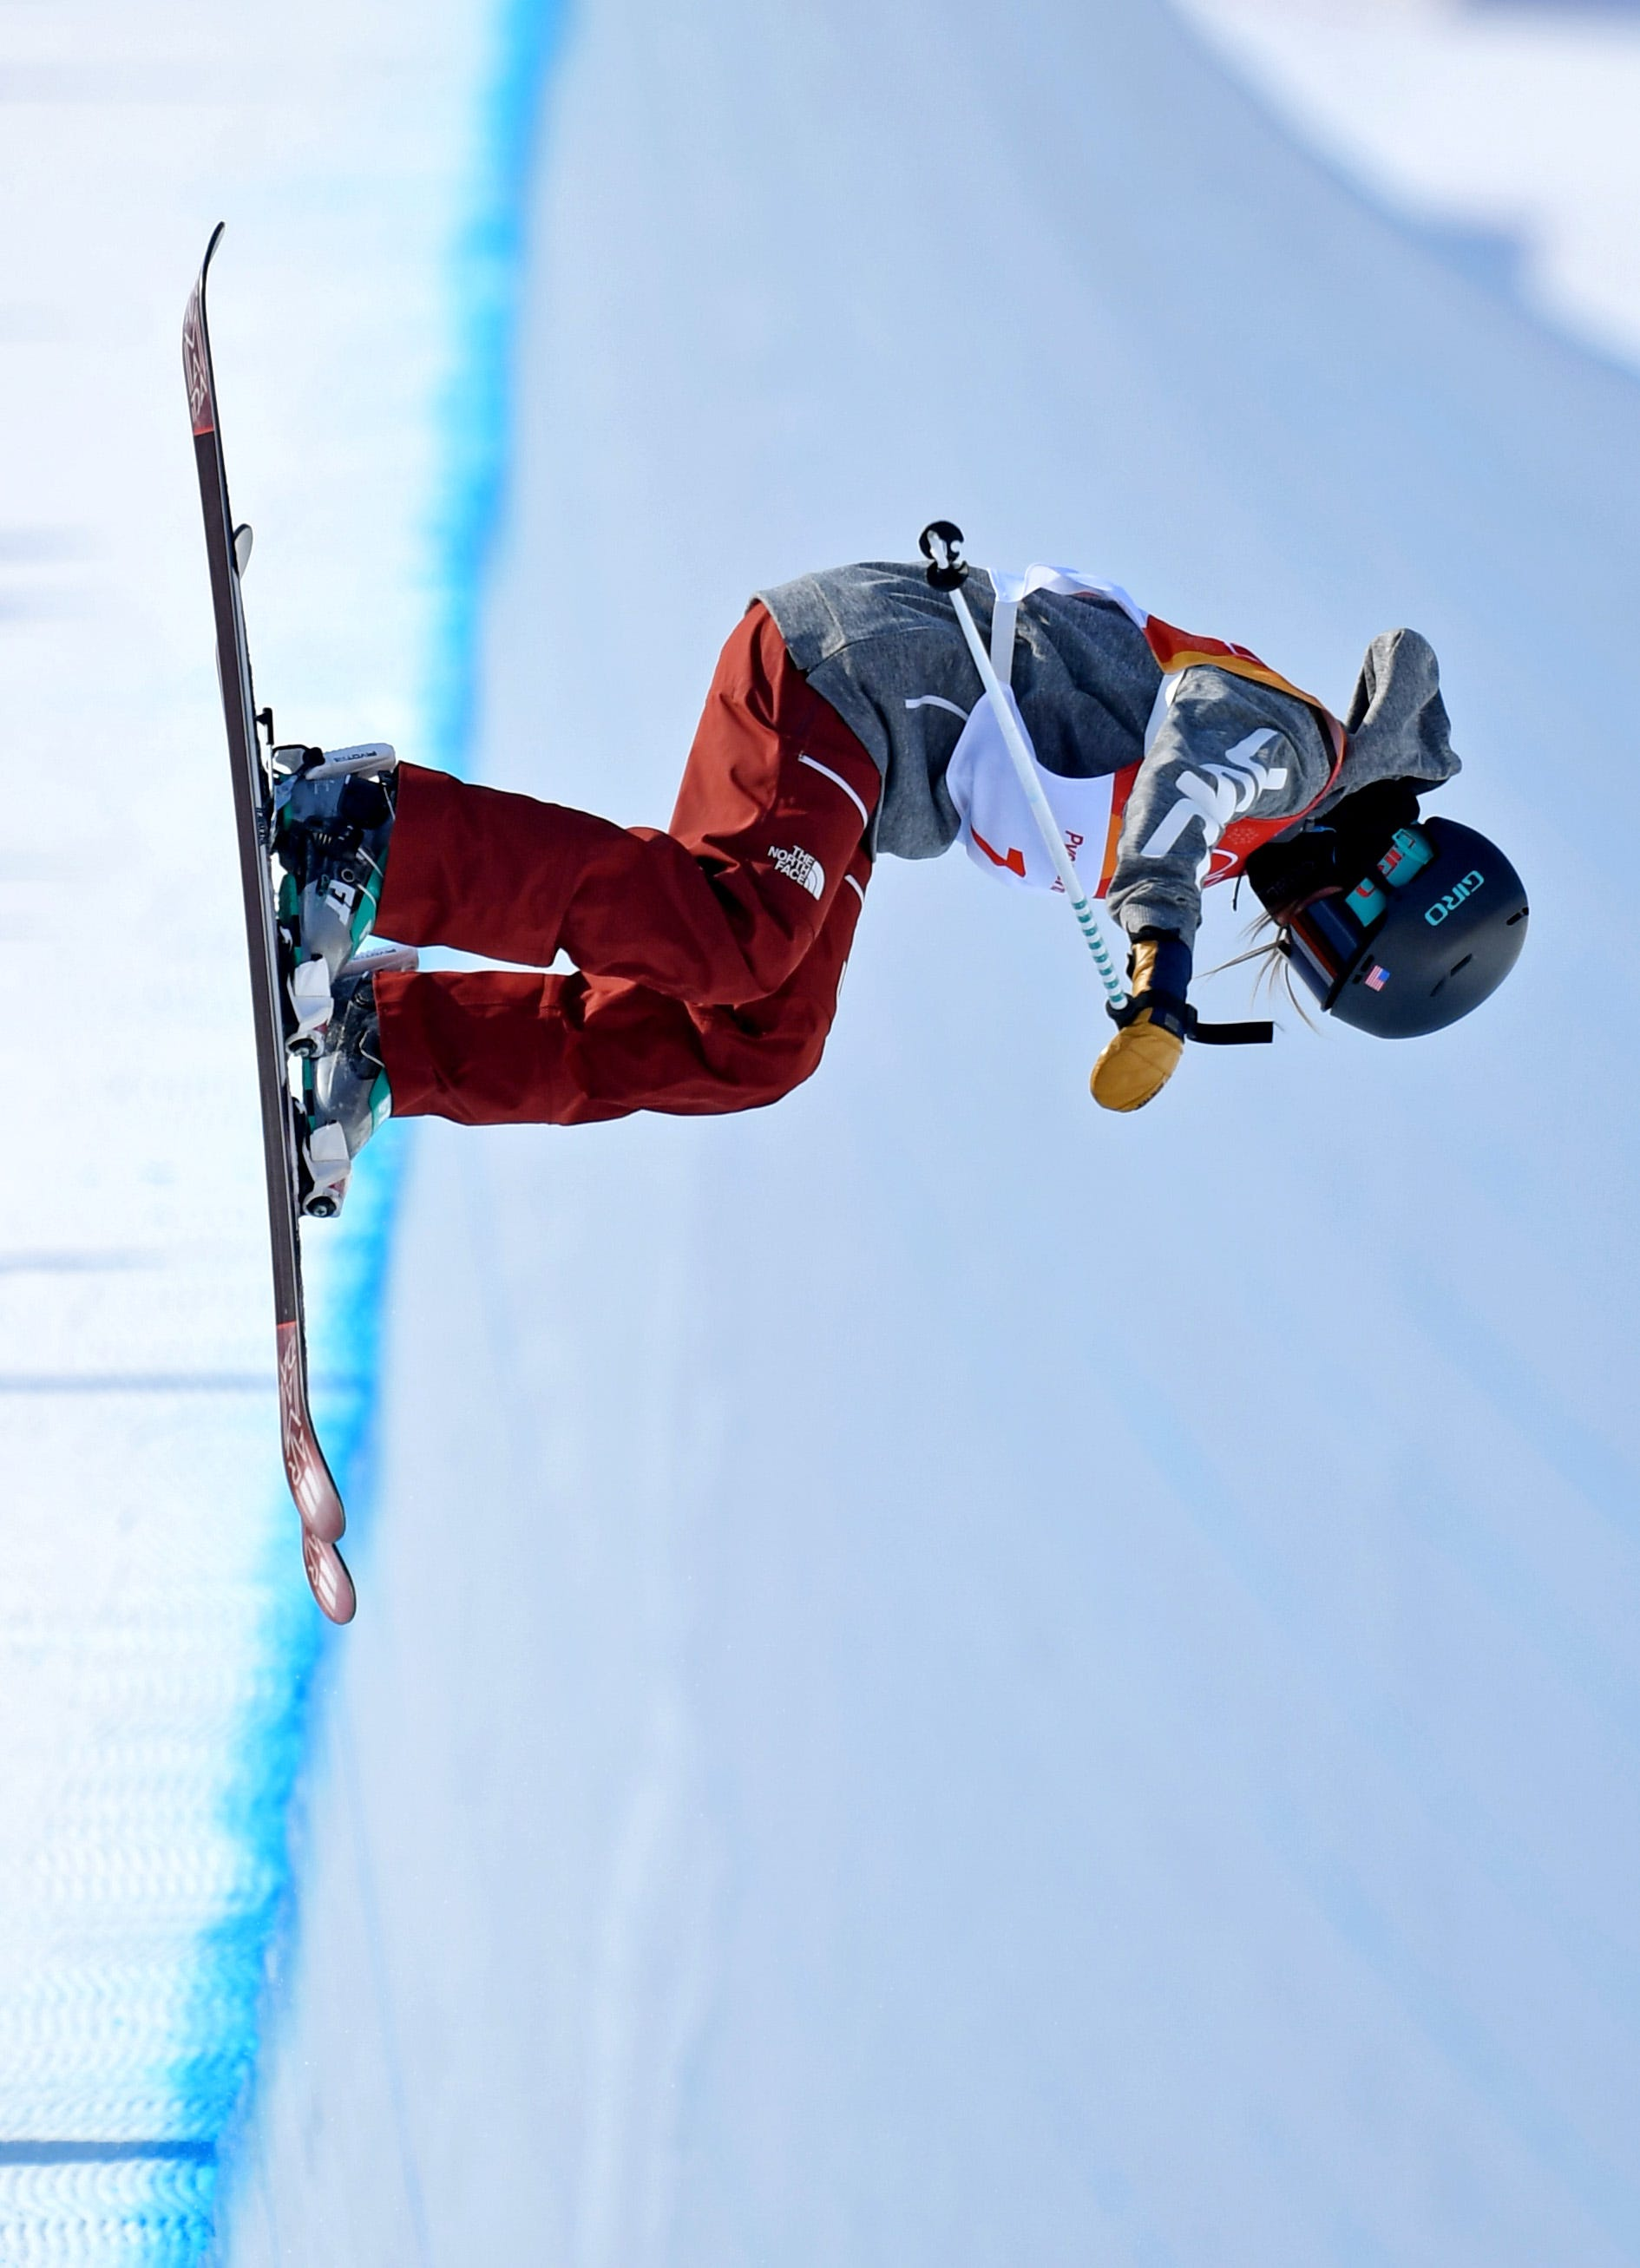 2018 Winter Olympics: Halfpipe wins rave reviews from skiers and snowboarders